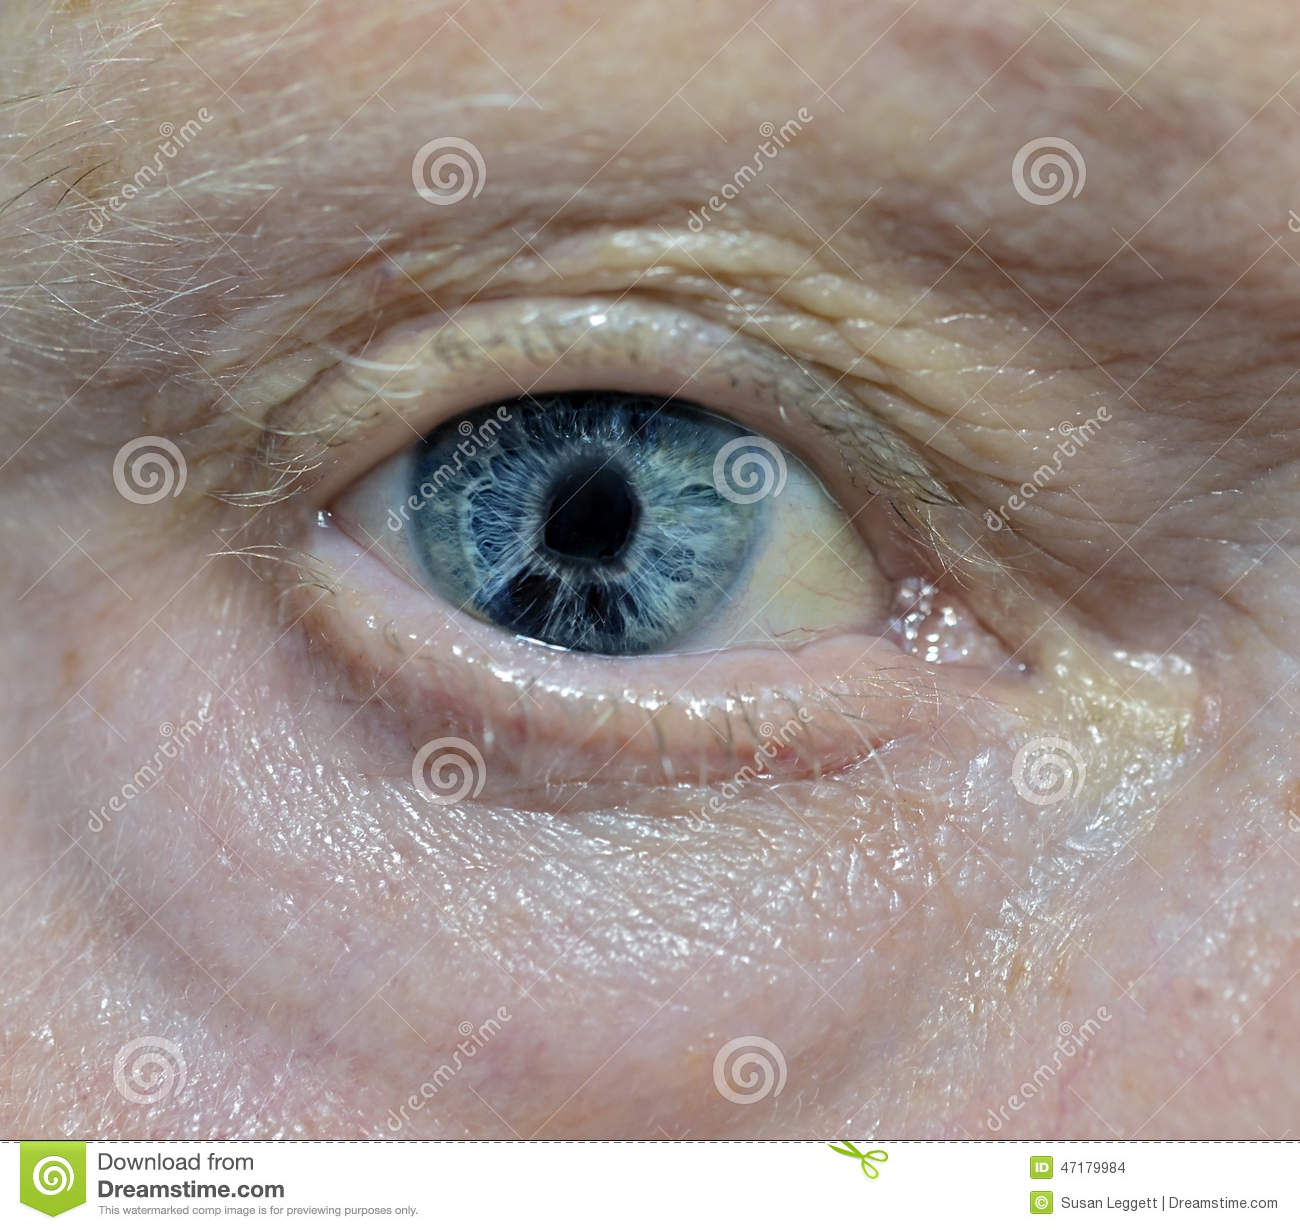 Photo shows eye problem Check Out This Holiday 2017 Photo of Vicki Gunvalson The Daily